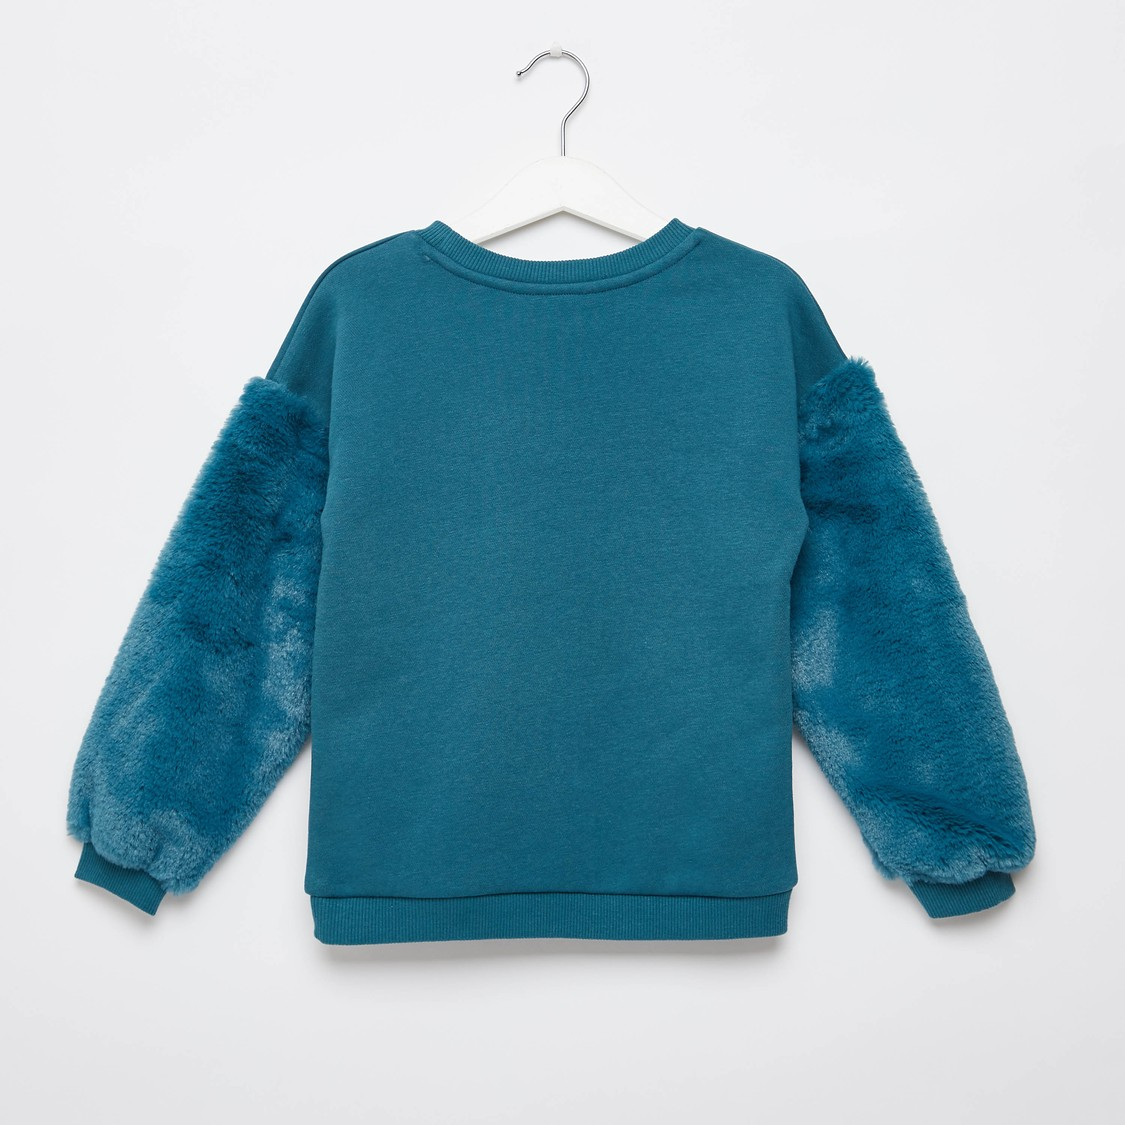 Printed Sweat Top with Plush Detail Long Sleeves and Round Neck